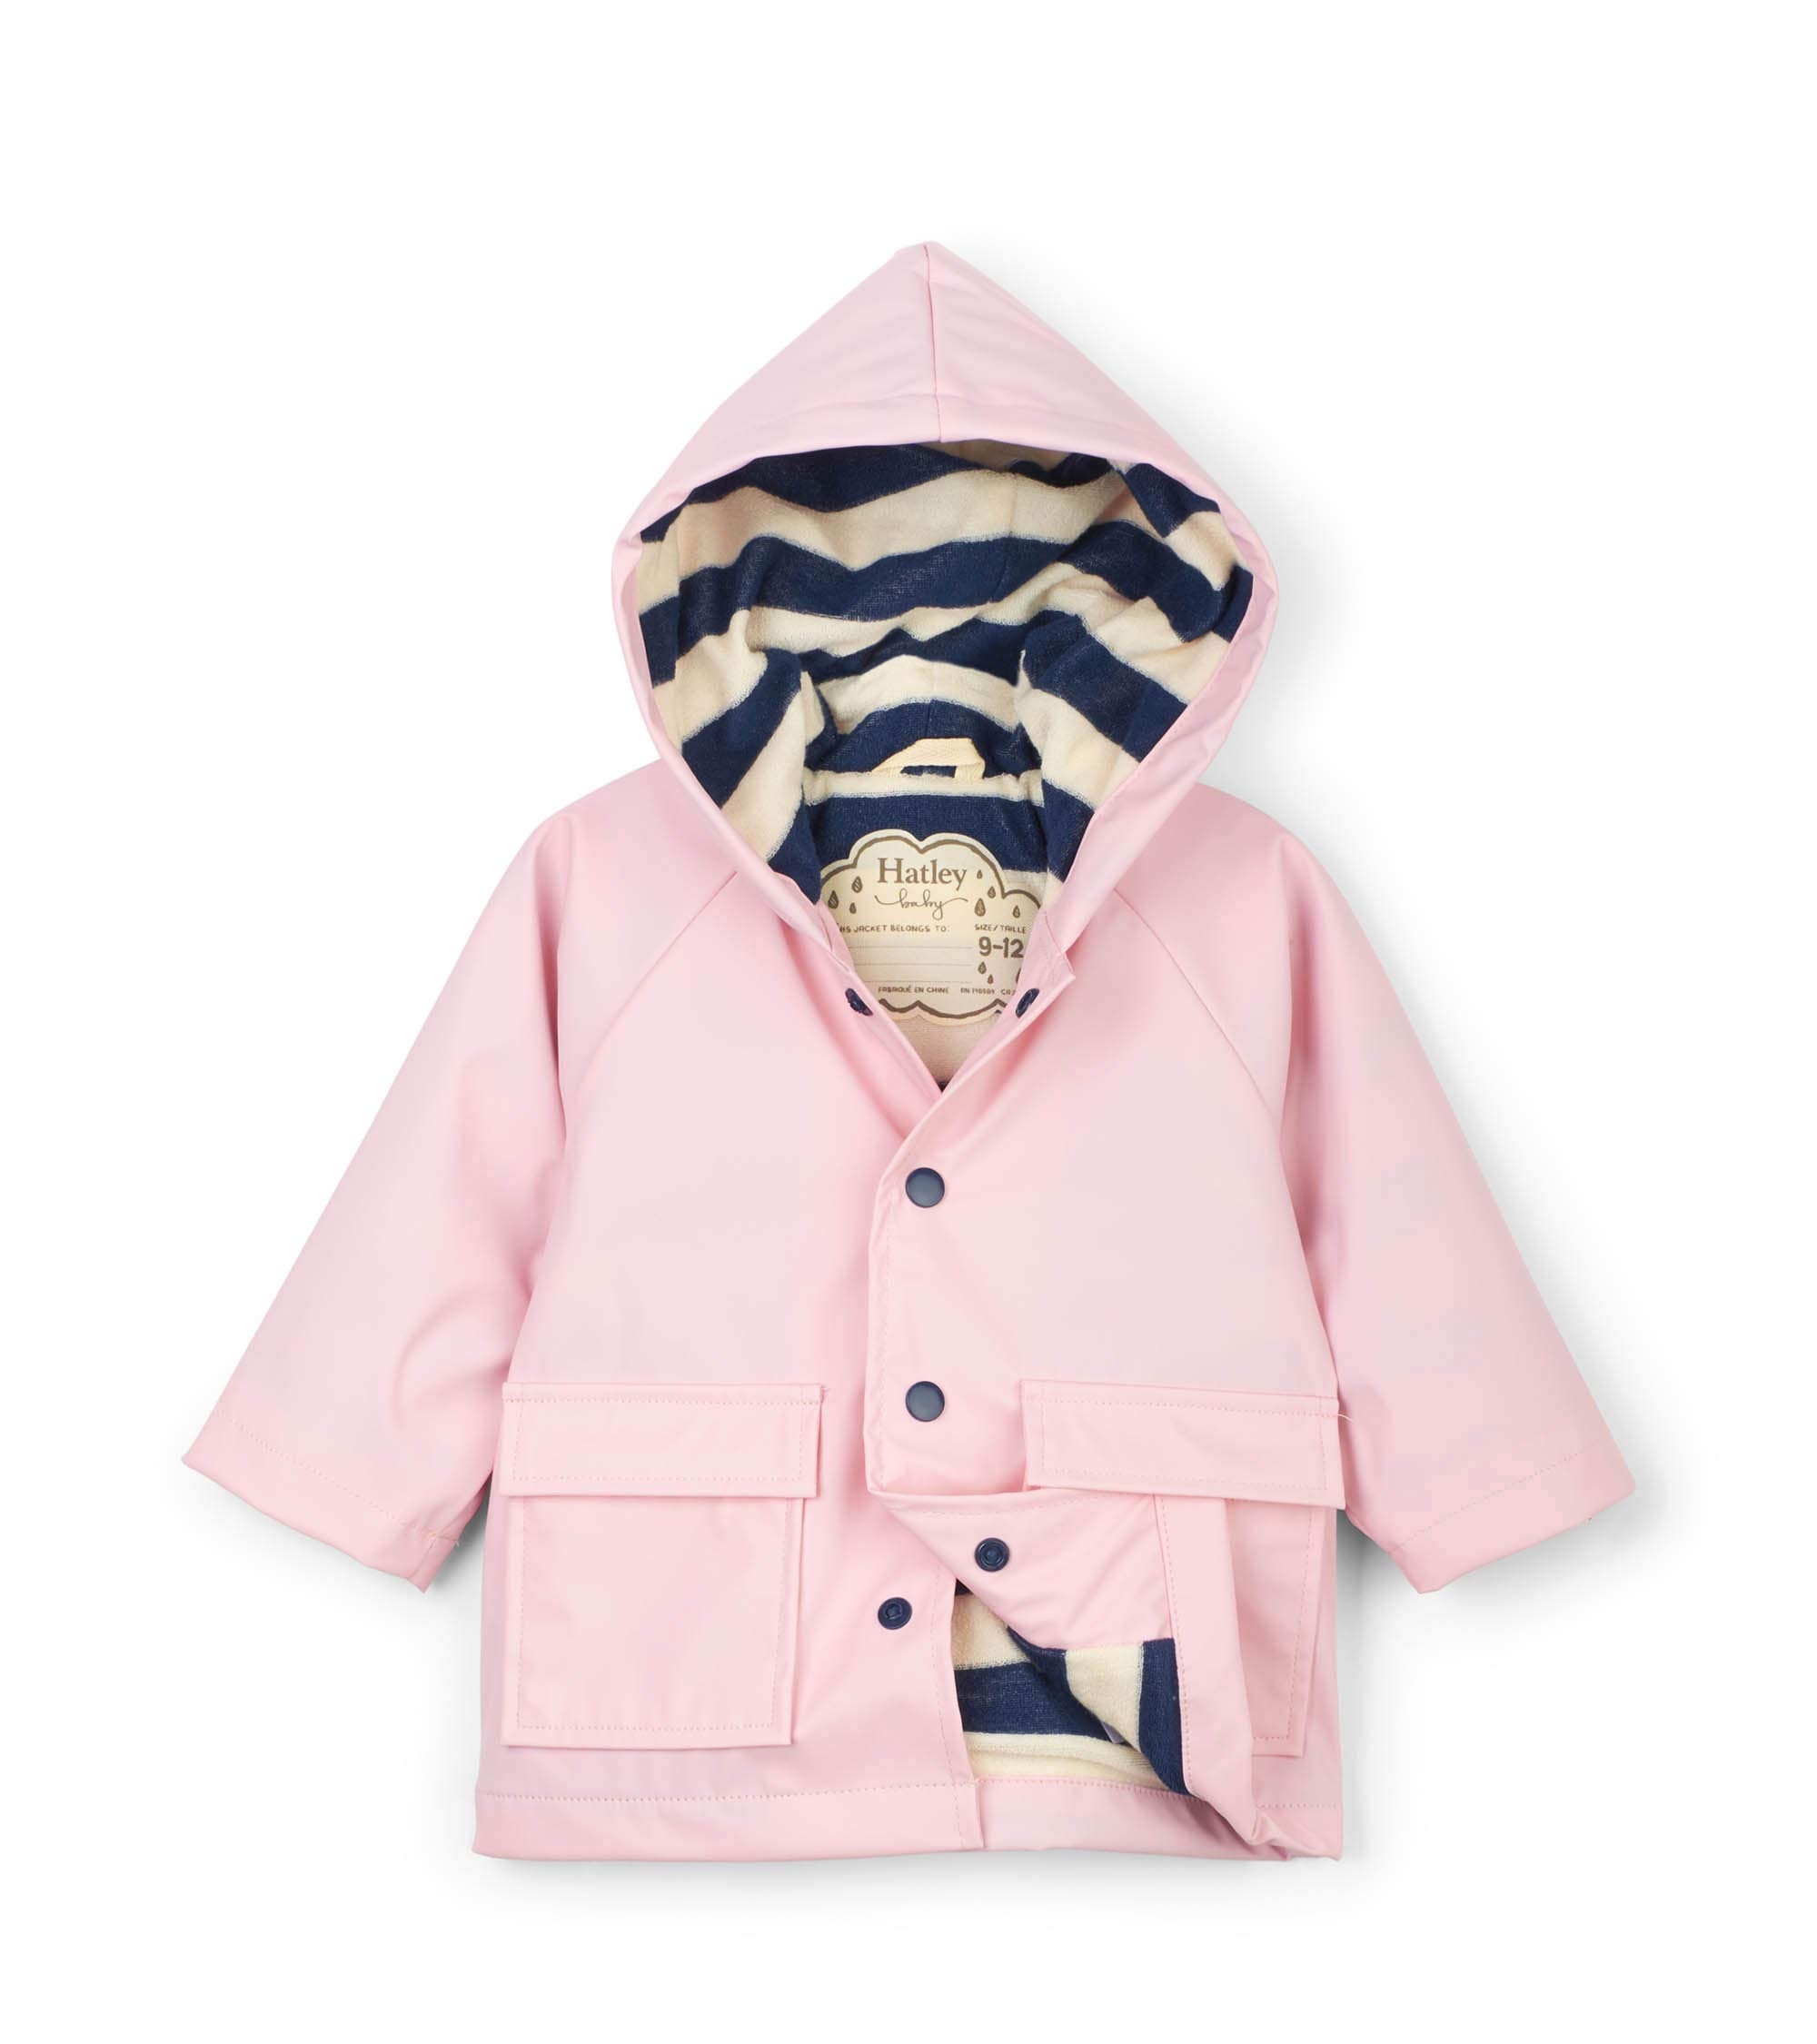 Hatley Baby Girls Printed Raincoats, Pink, 9-12 Months by Hatley